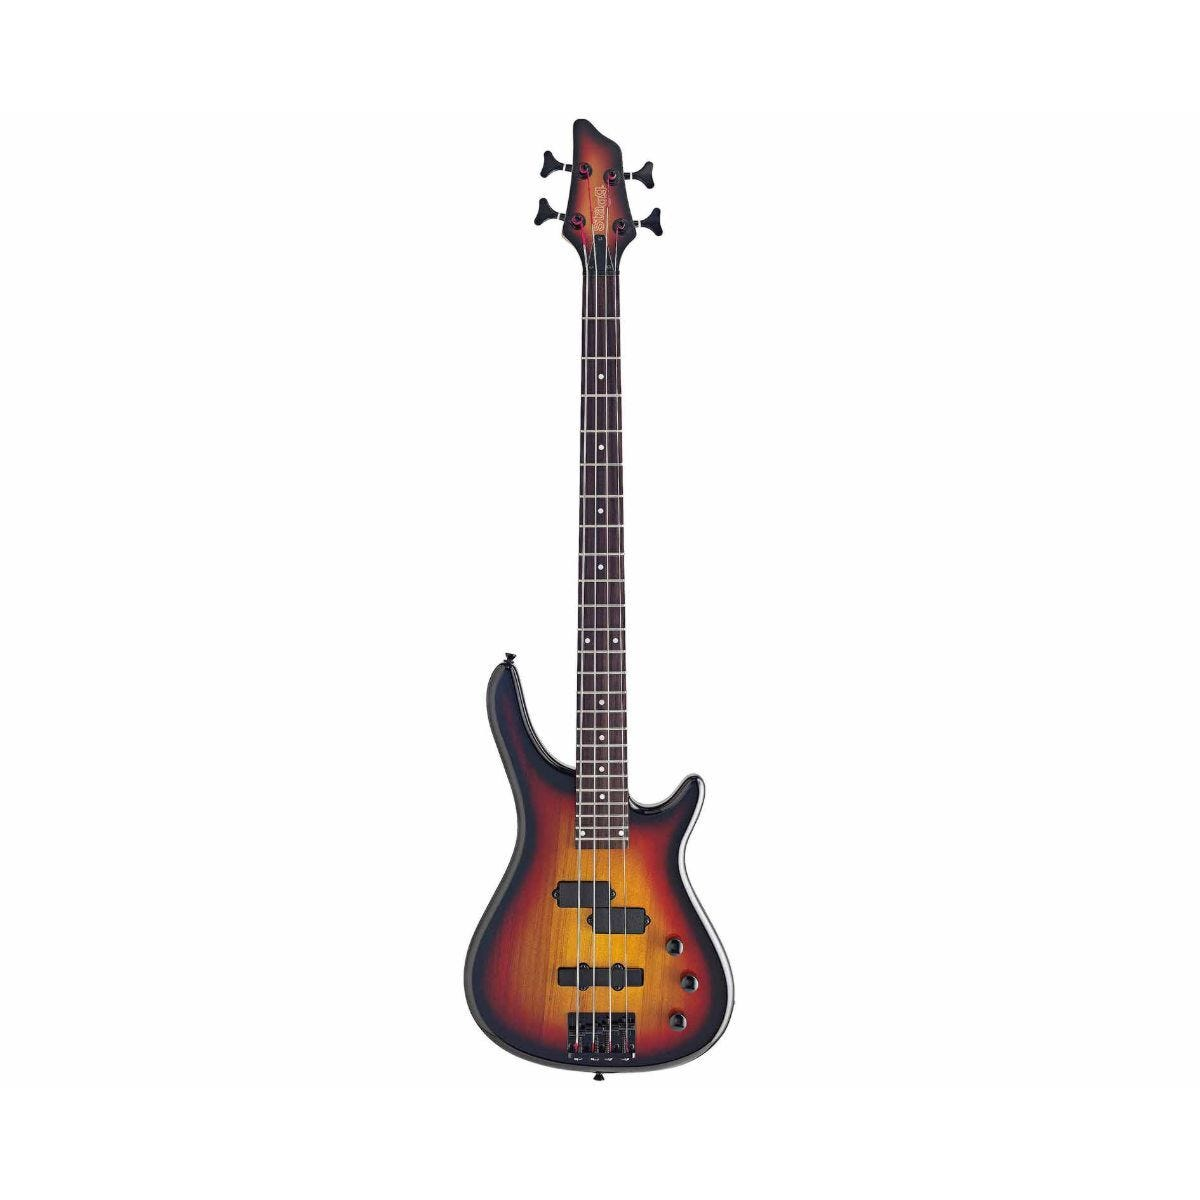 Stagg BC300 4 String Electric Bass Guitar Sunburst